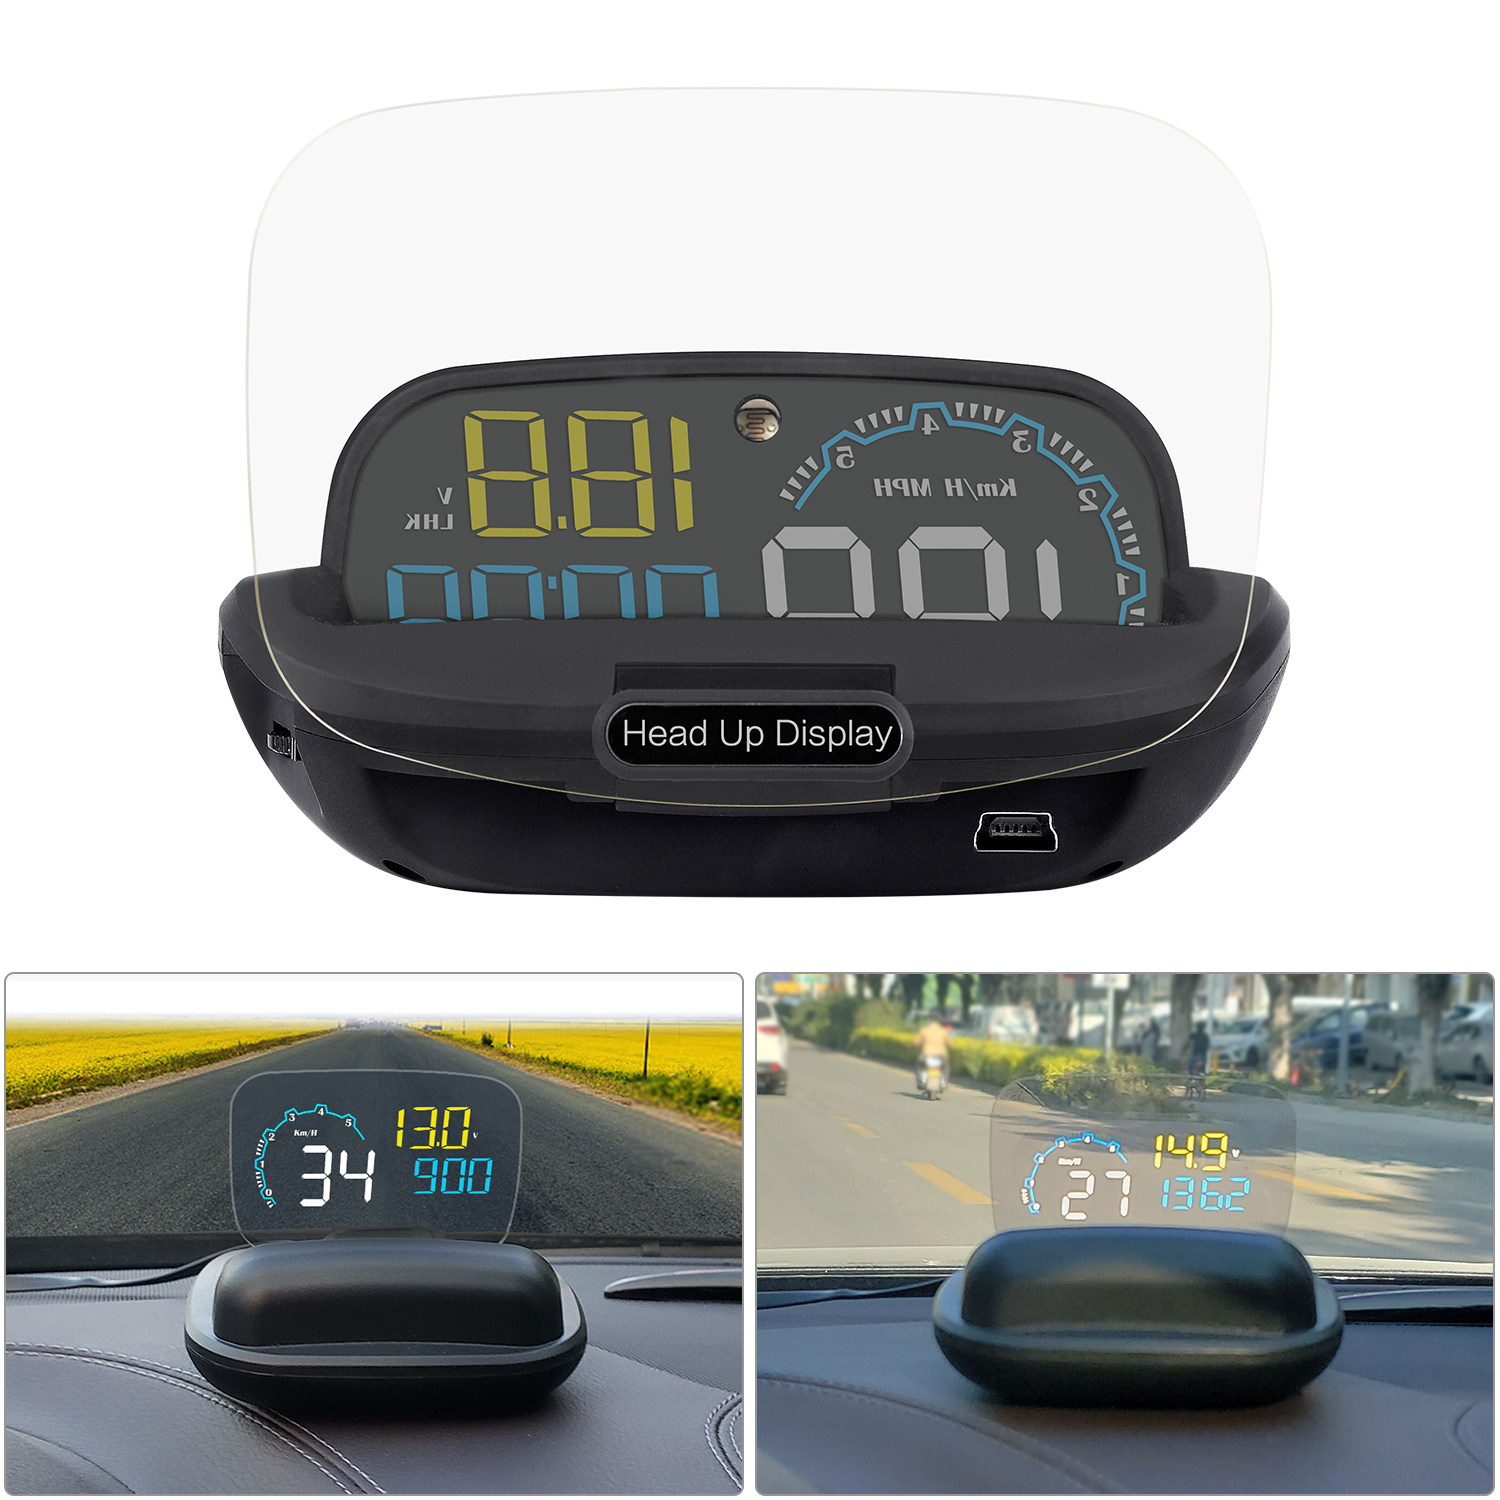 Image 5 - GEYIREN New Arrival Mirror HUD C600 Car Head up display Windshield Speed Projector Security Alarm Overspeed RPM Voltage-in Head-up Display from Automobiles & Motorcycles